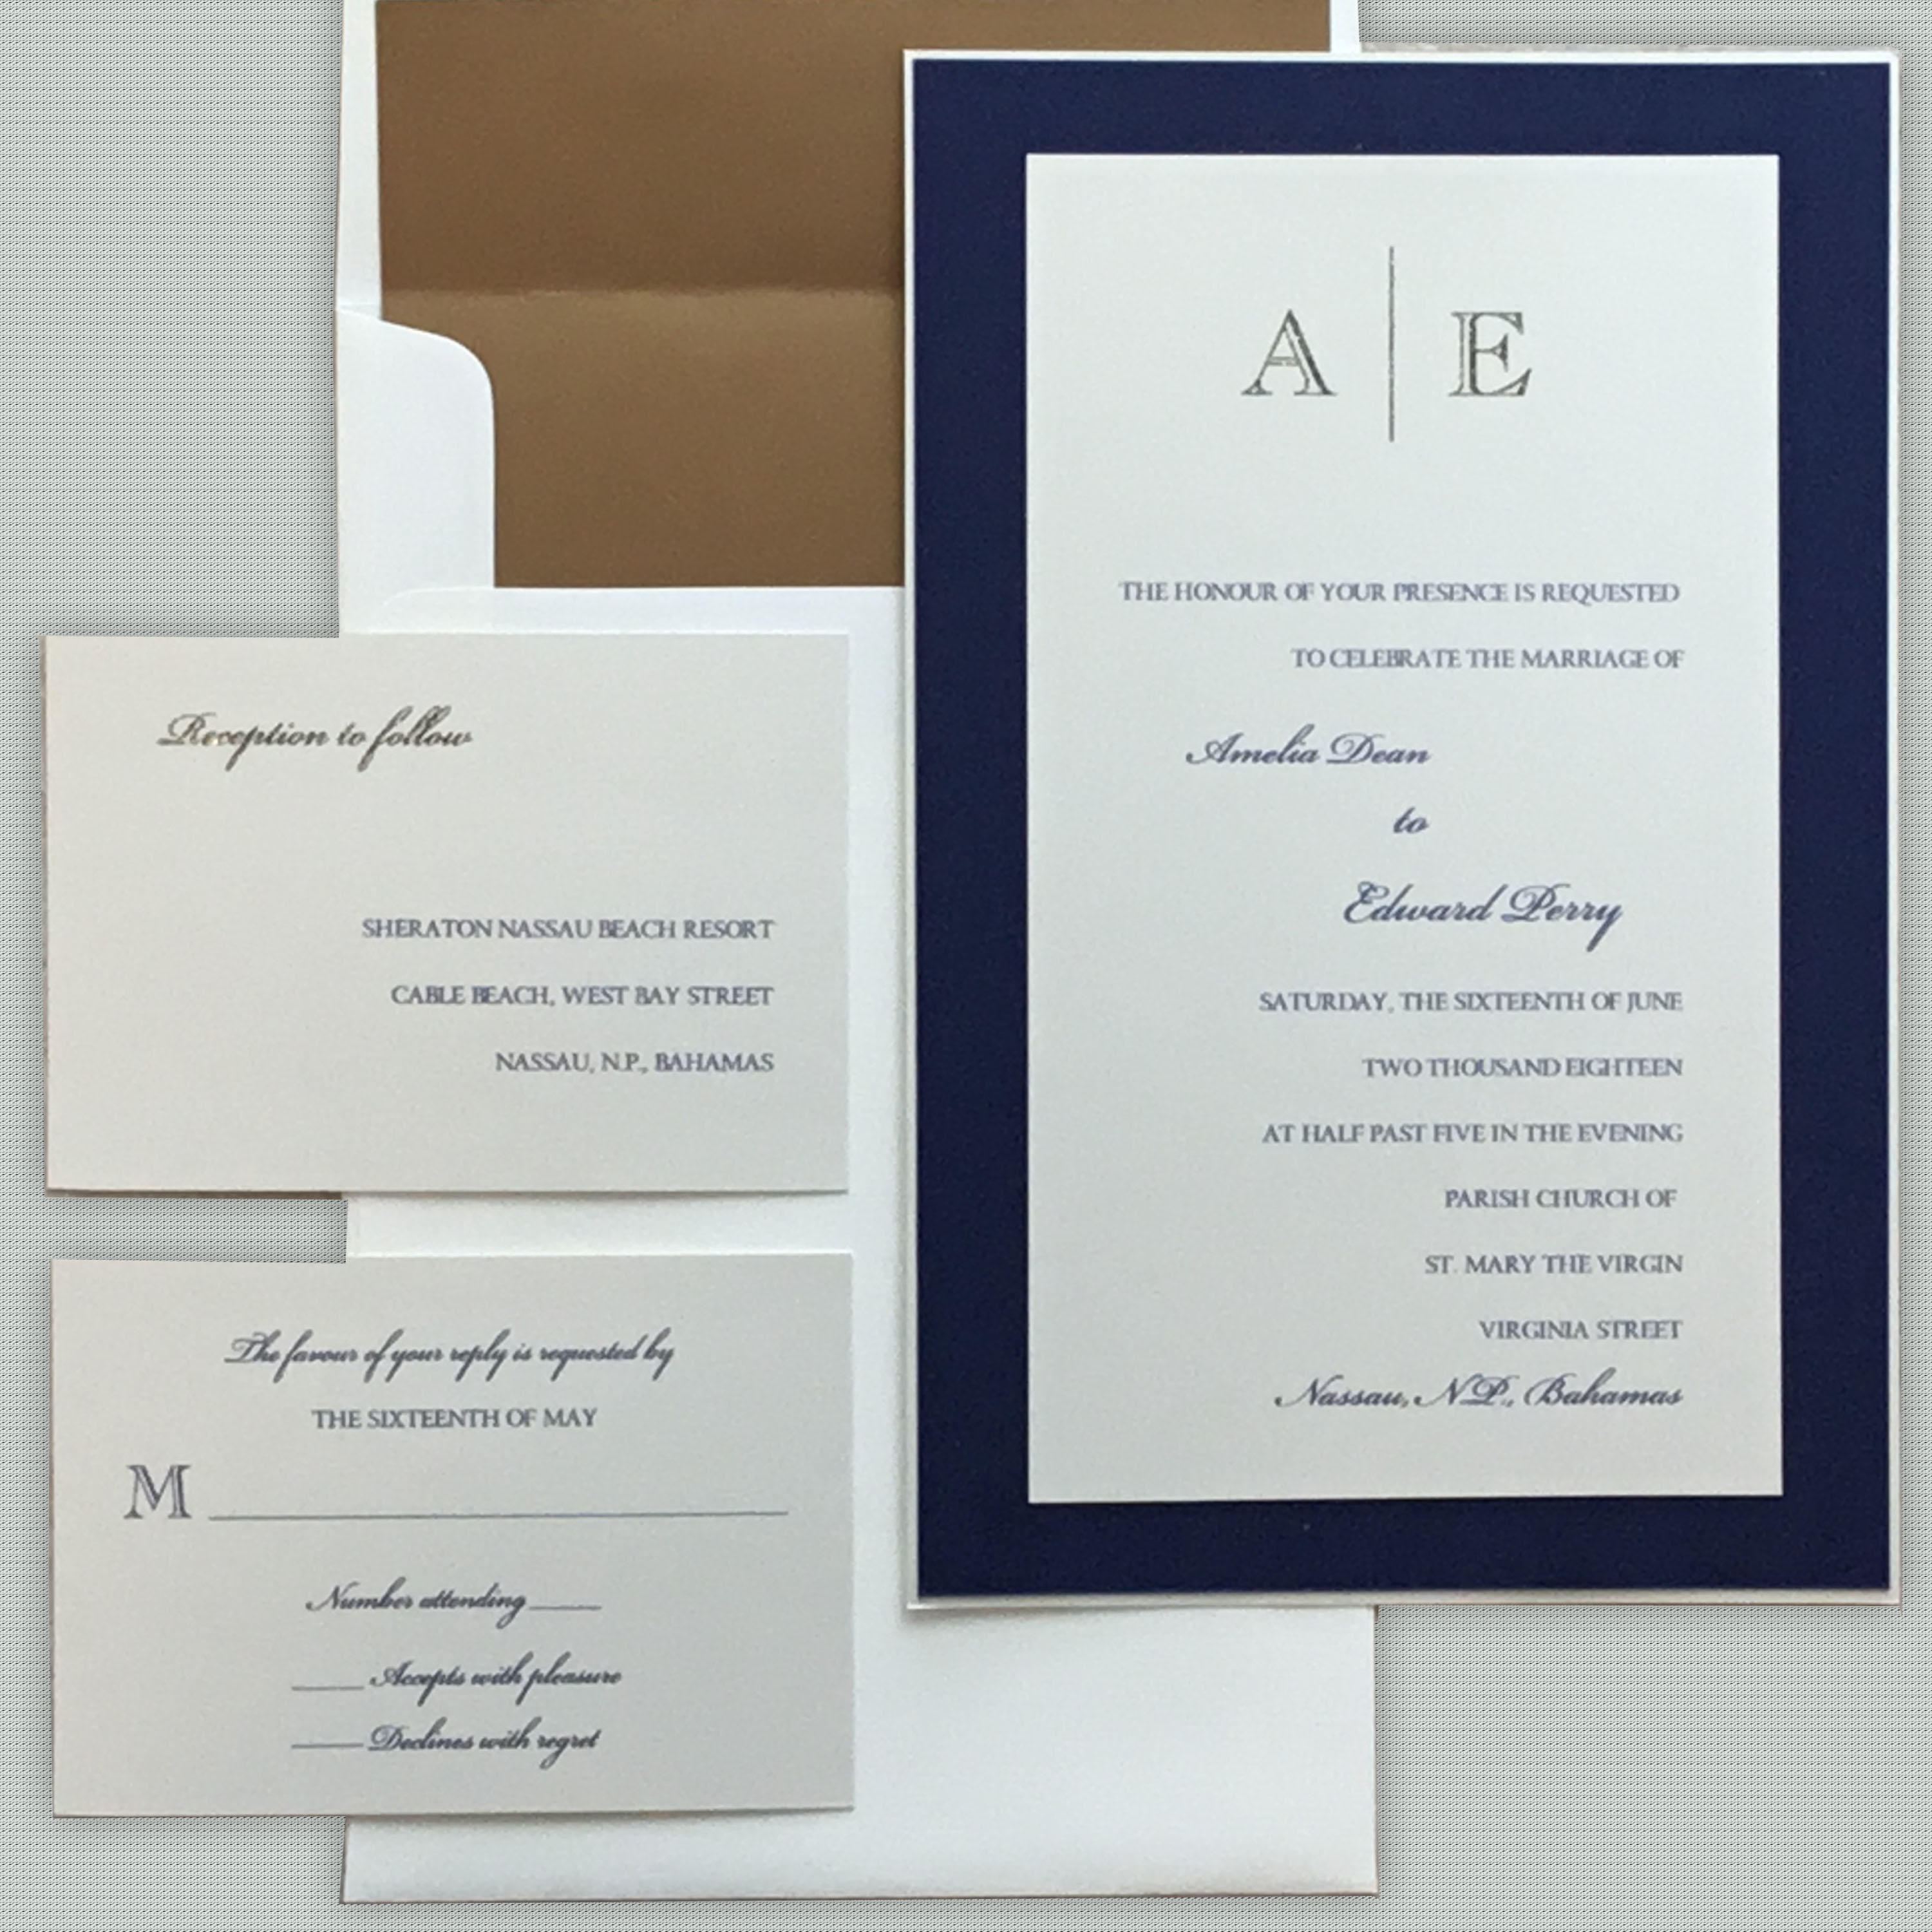 Leslie Store Wedding Invitations & Stationery image 4